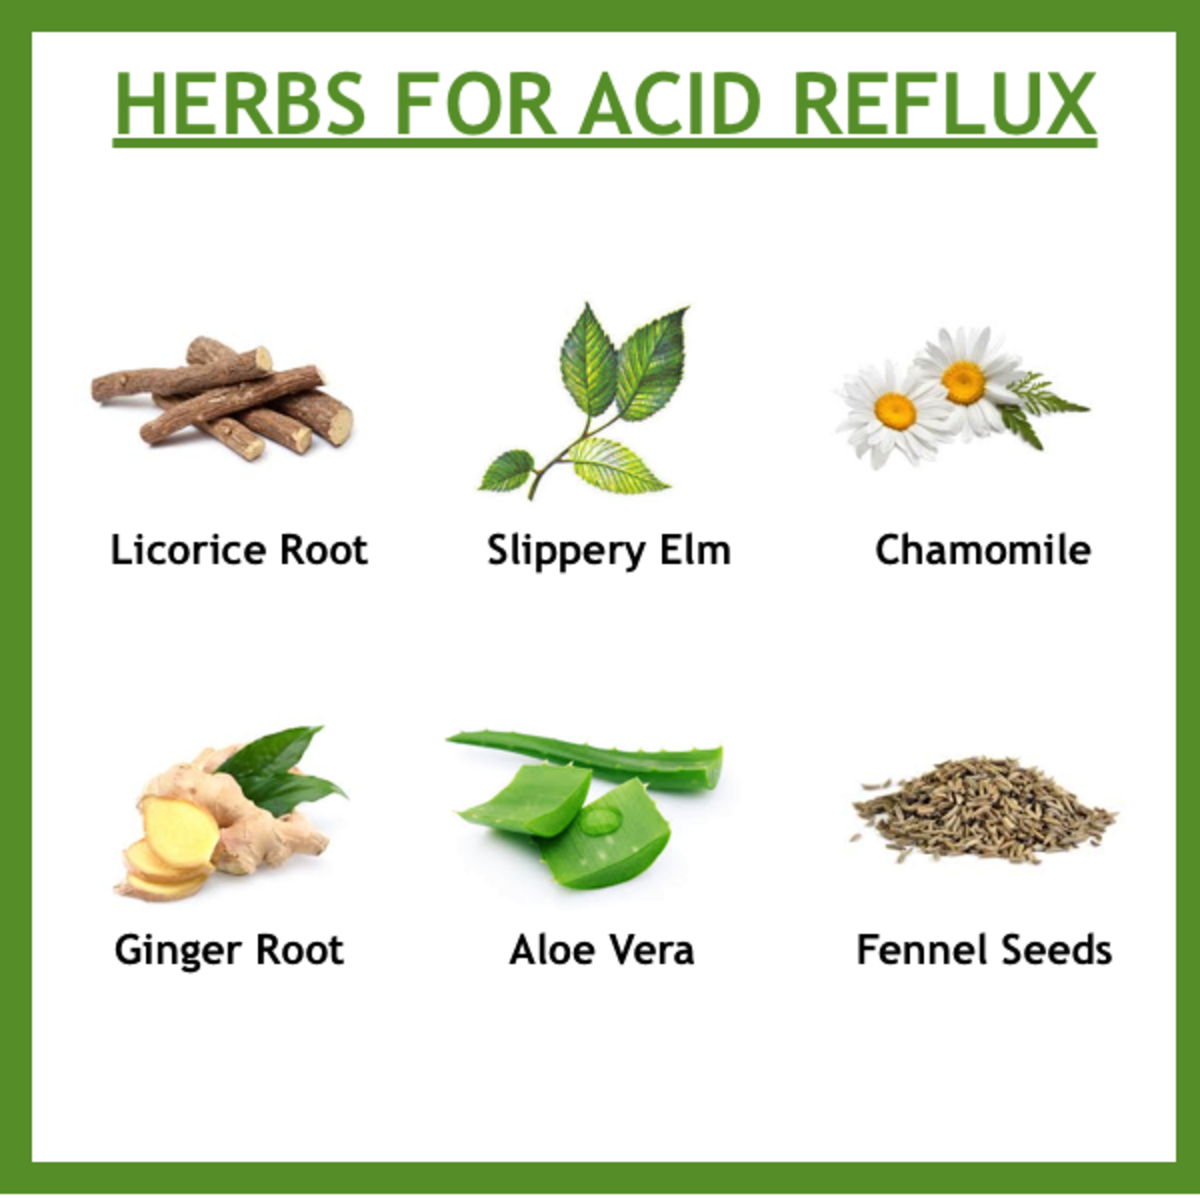 Here is a list of herbal medicines that can help ease and prevent the symptoms of acid reflux. However, please keep in mind, consult with your doctor first before use.